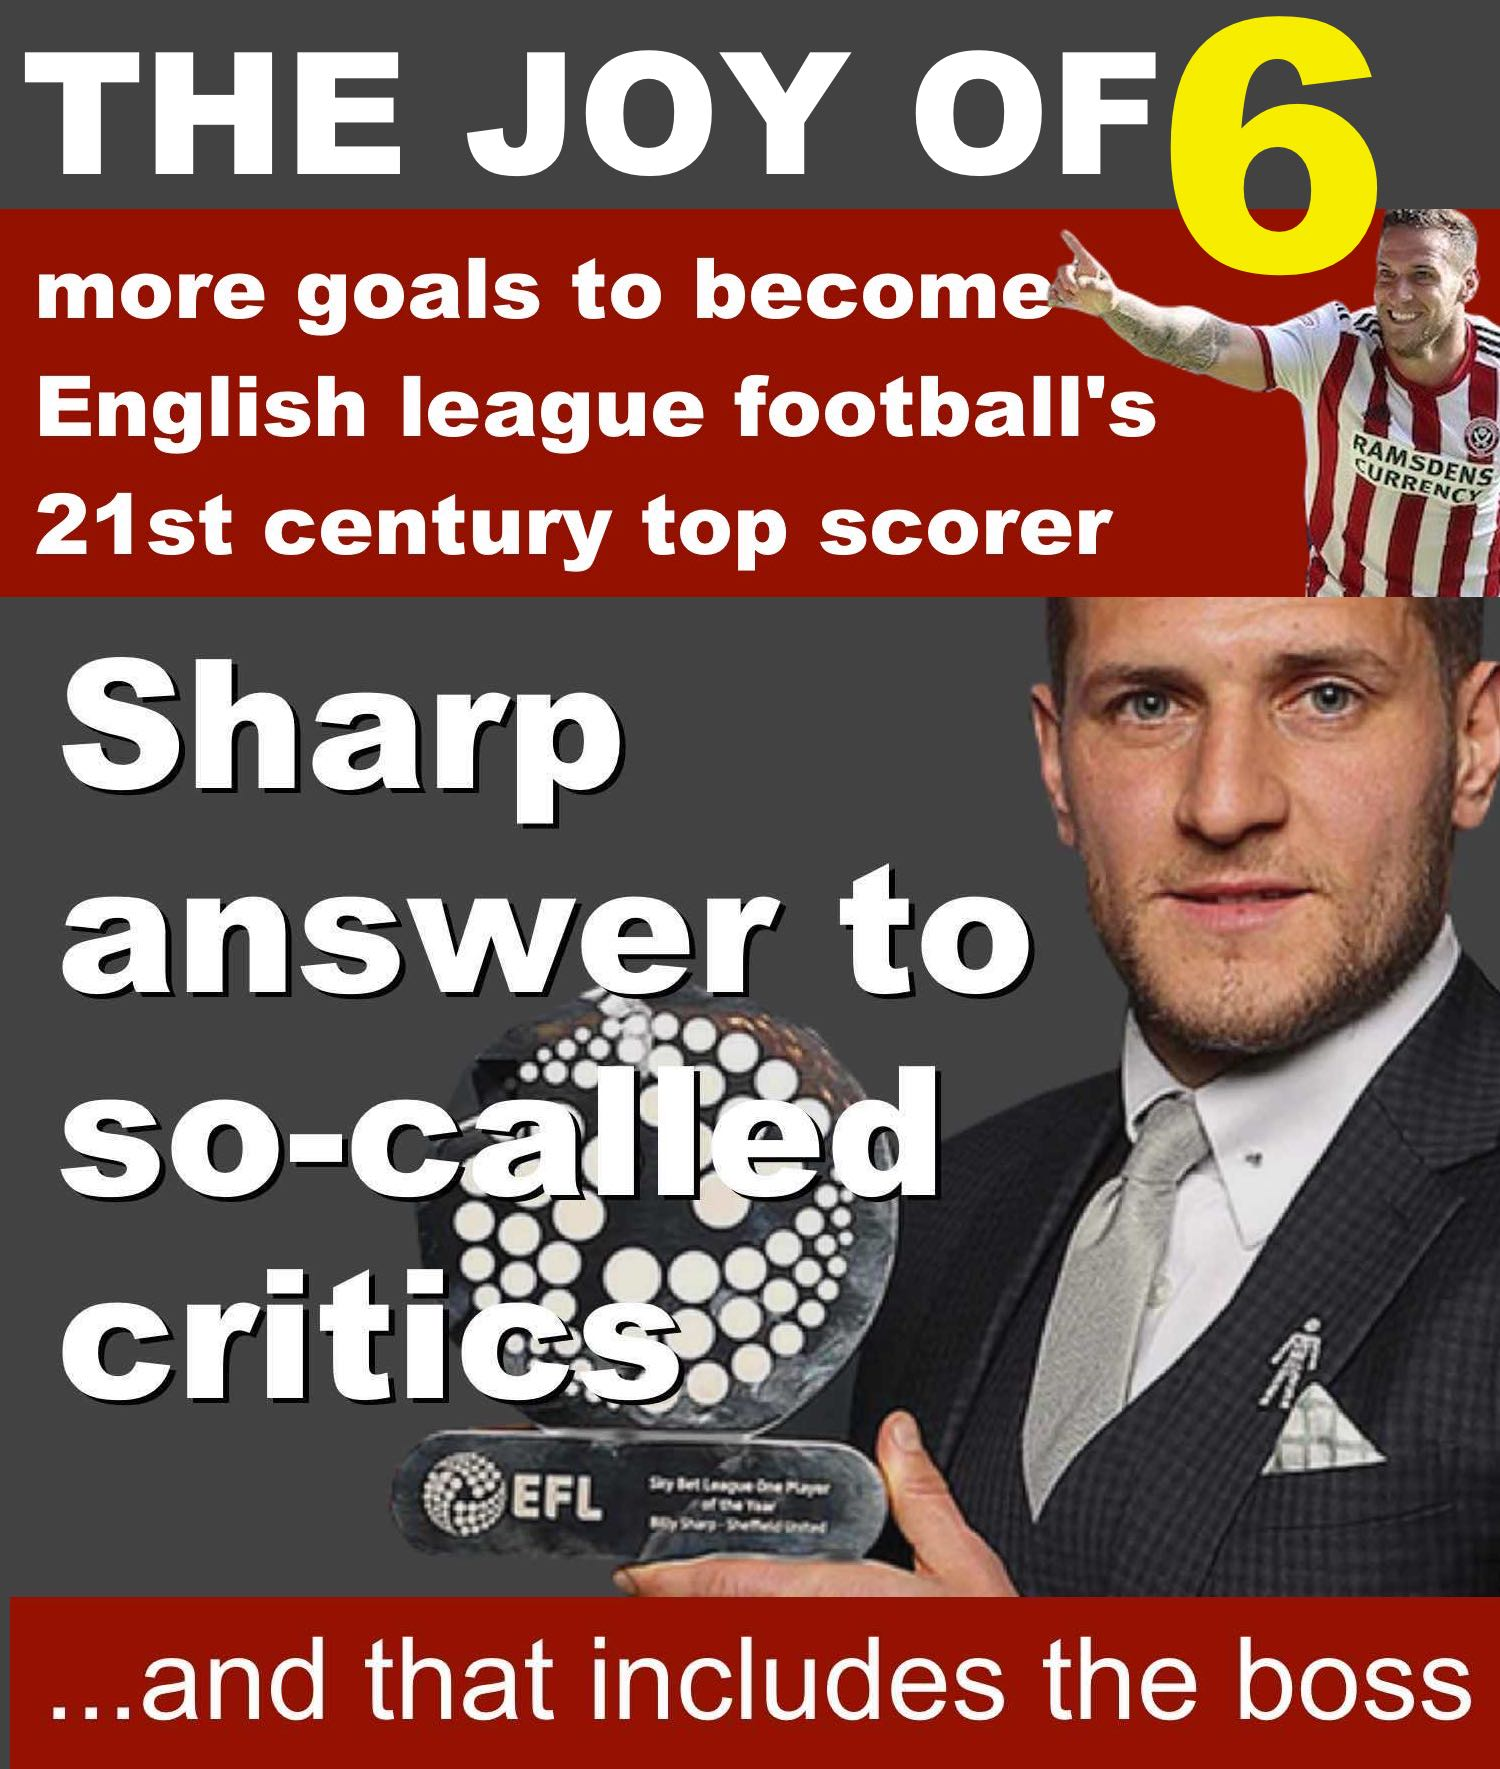 Sheffield United striker Billy Sharp on brink of English league record as he answers doubters including Blades boss Chris Wilder